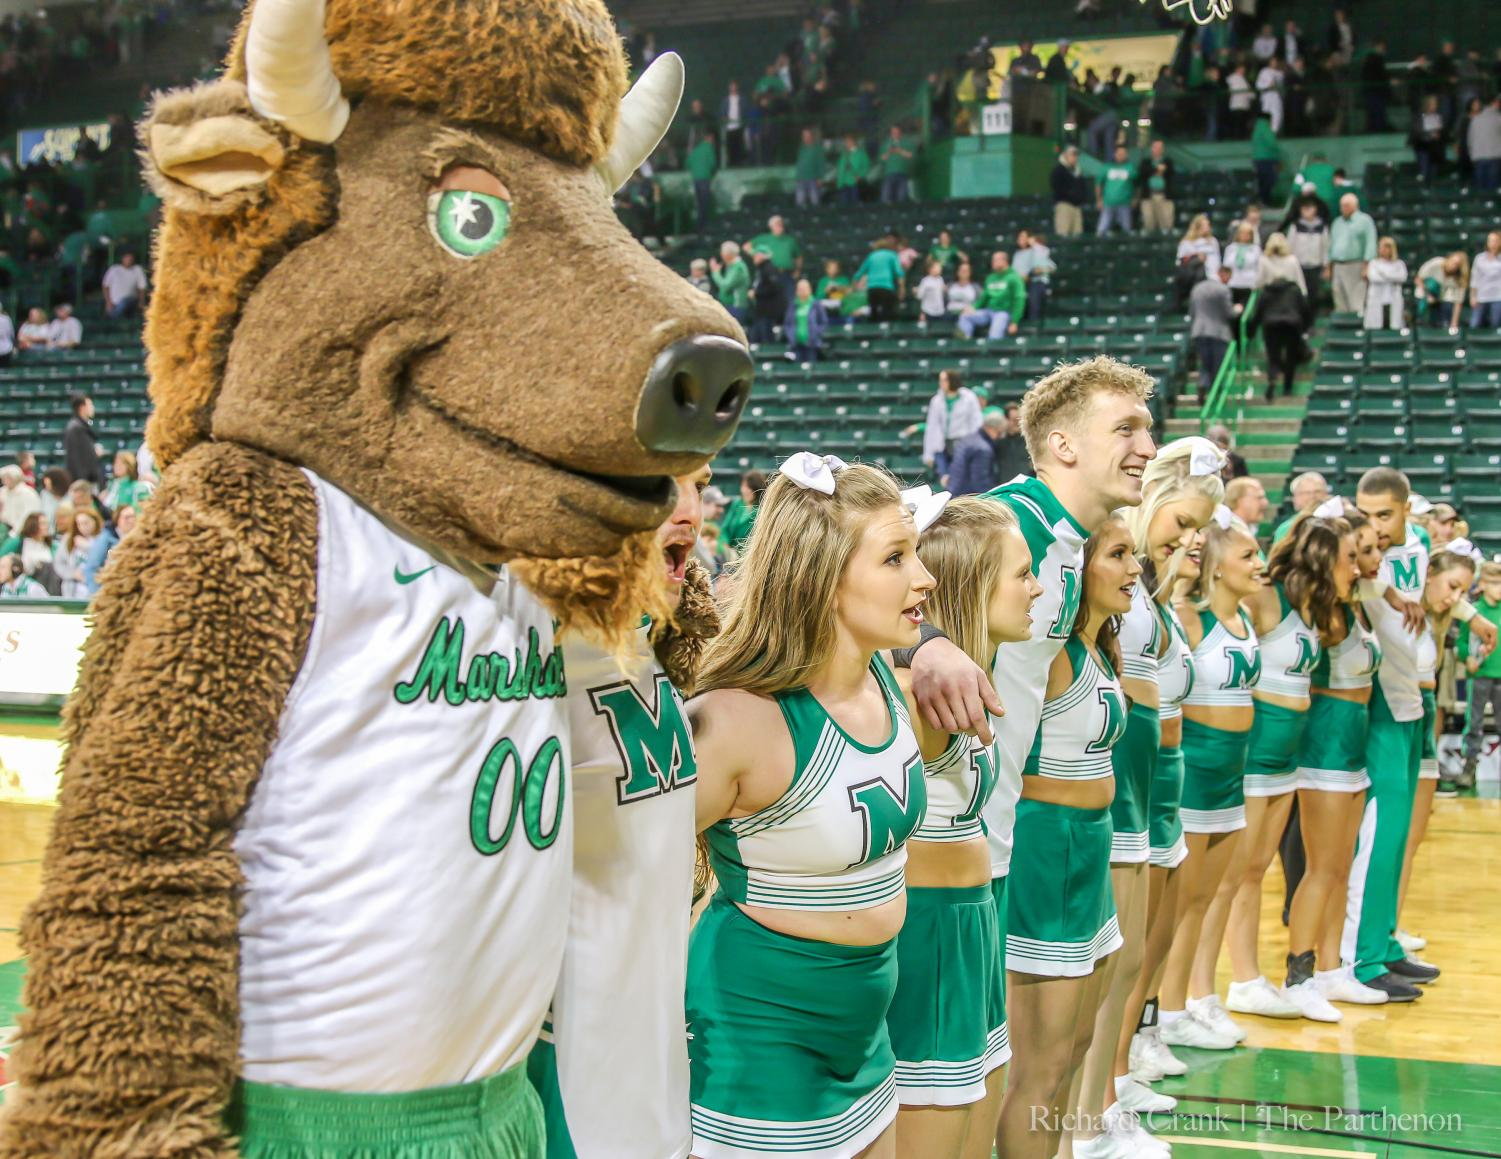 Marshall University cheerleaders and Marco sing the university's alma mater following a home basketball game against WKU on Jan. 12, 2019.